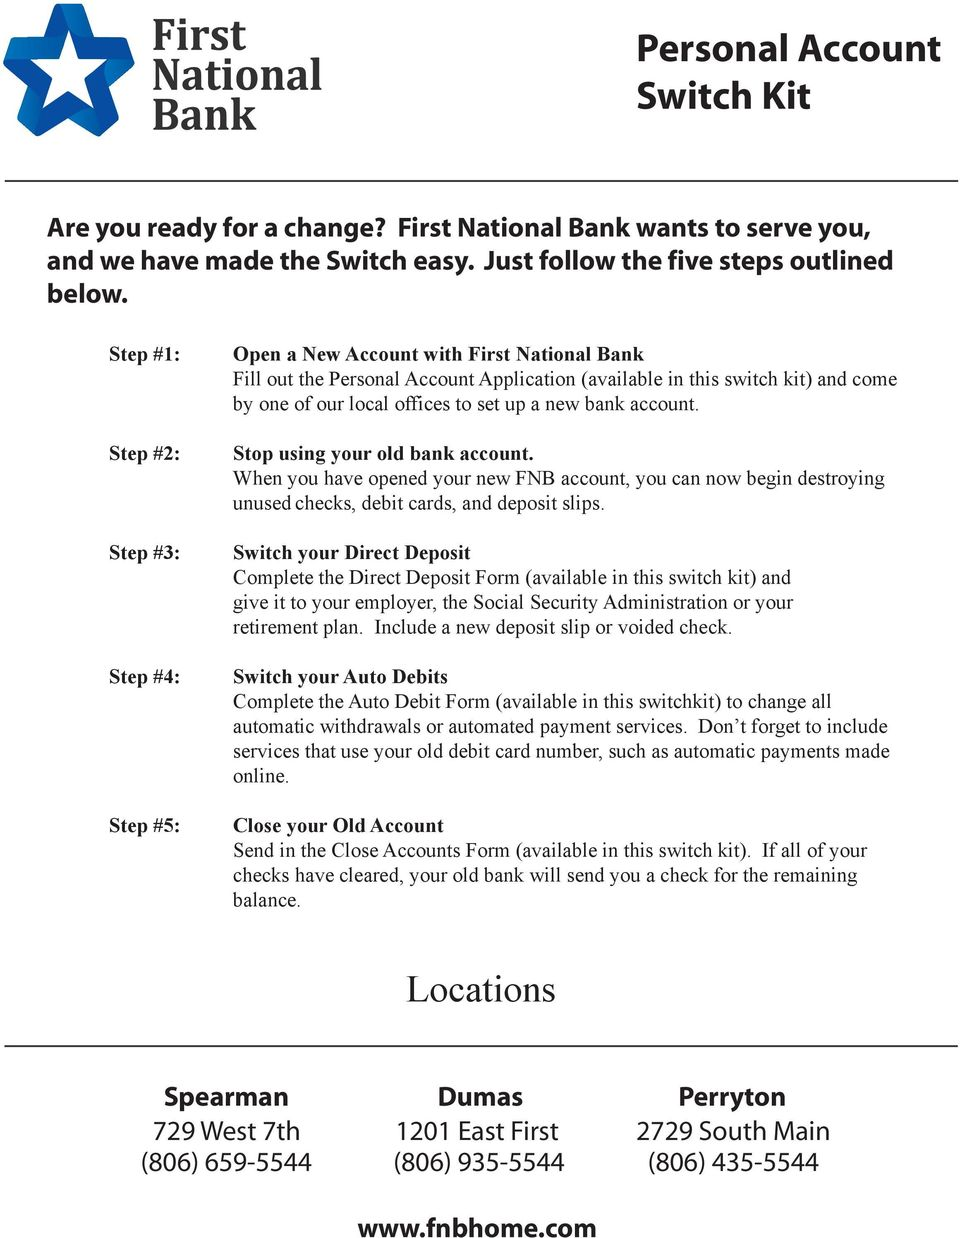 to set up a new bank account. Stop using your old bank account. When you have opened your new FNB account, you can now begin destroying unused checks, debit cards, and deposit slips.